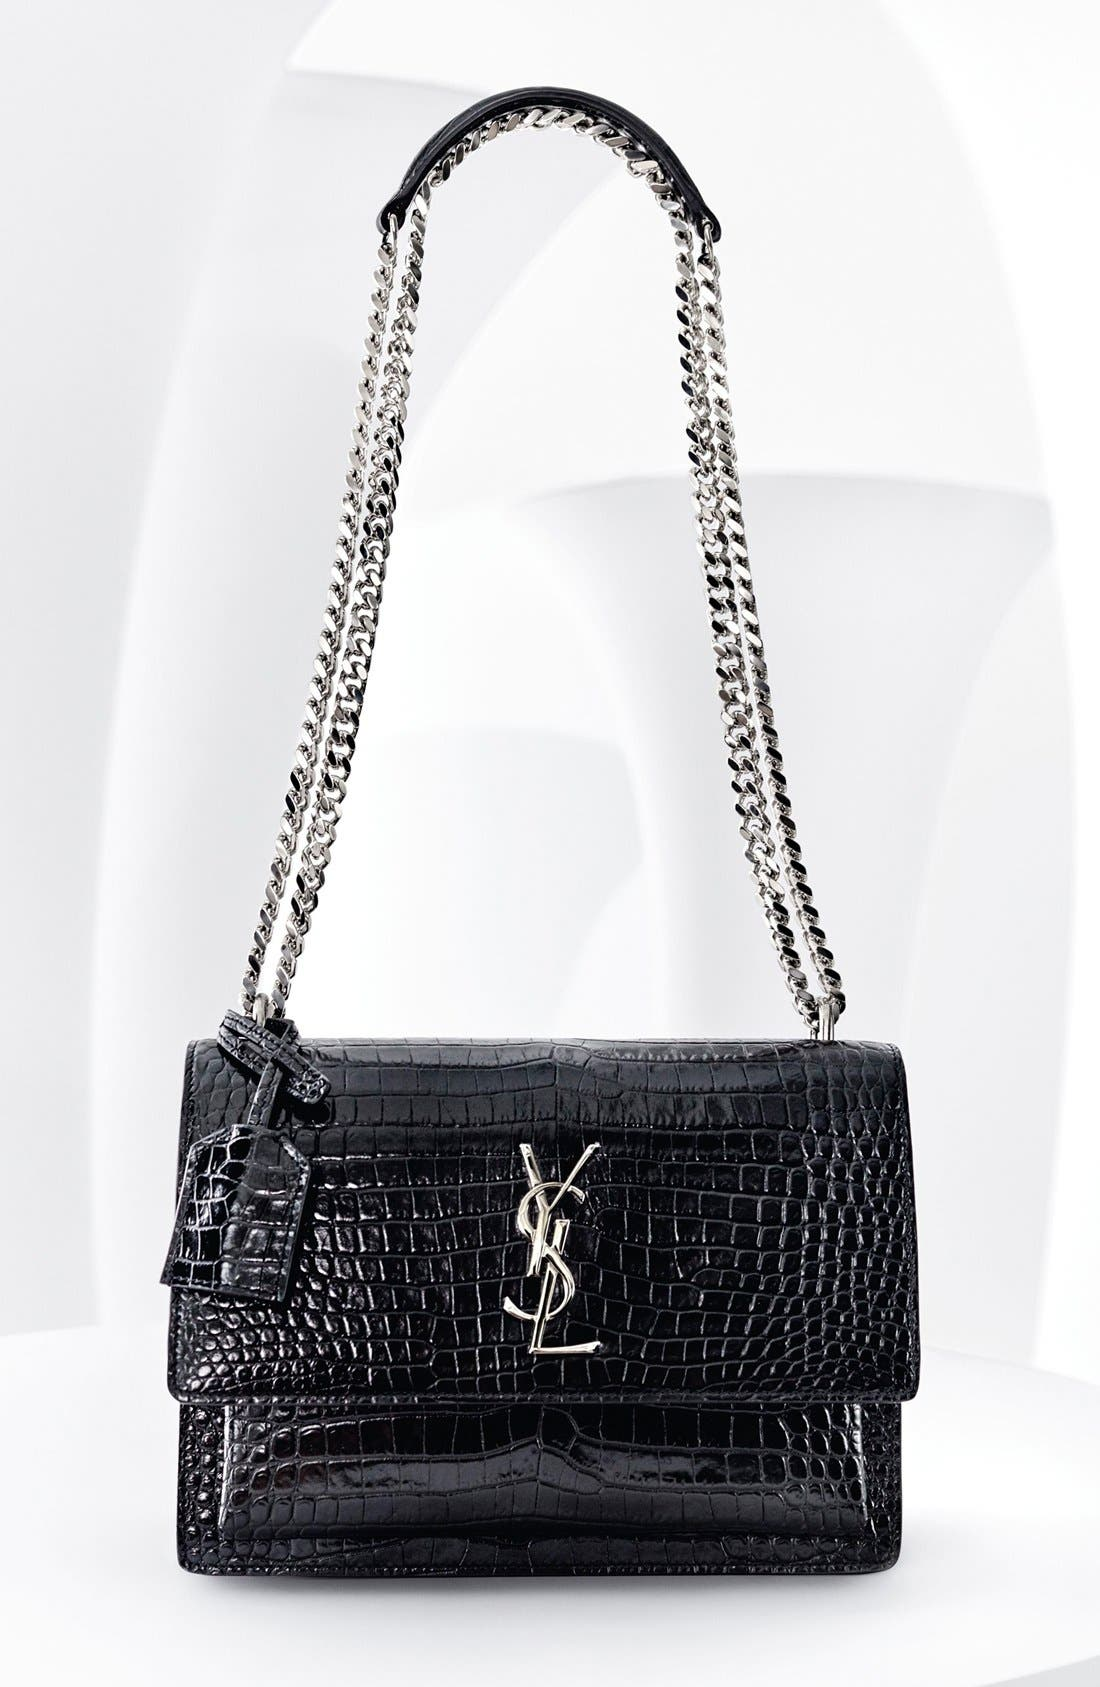 'Medium Monogram Sunset' Croc Embossed Leather Shoulder Bag,                             Alternate thumbnail 6, color,                             NERO